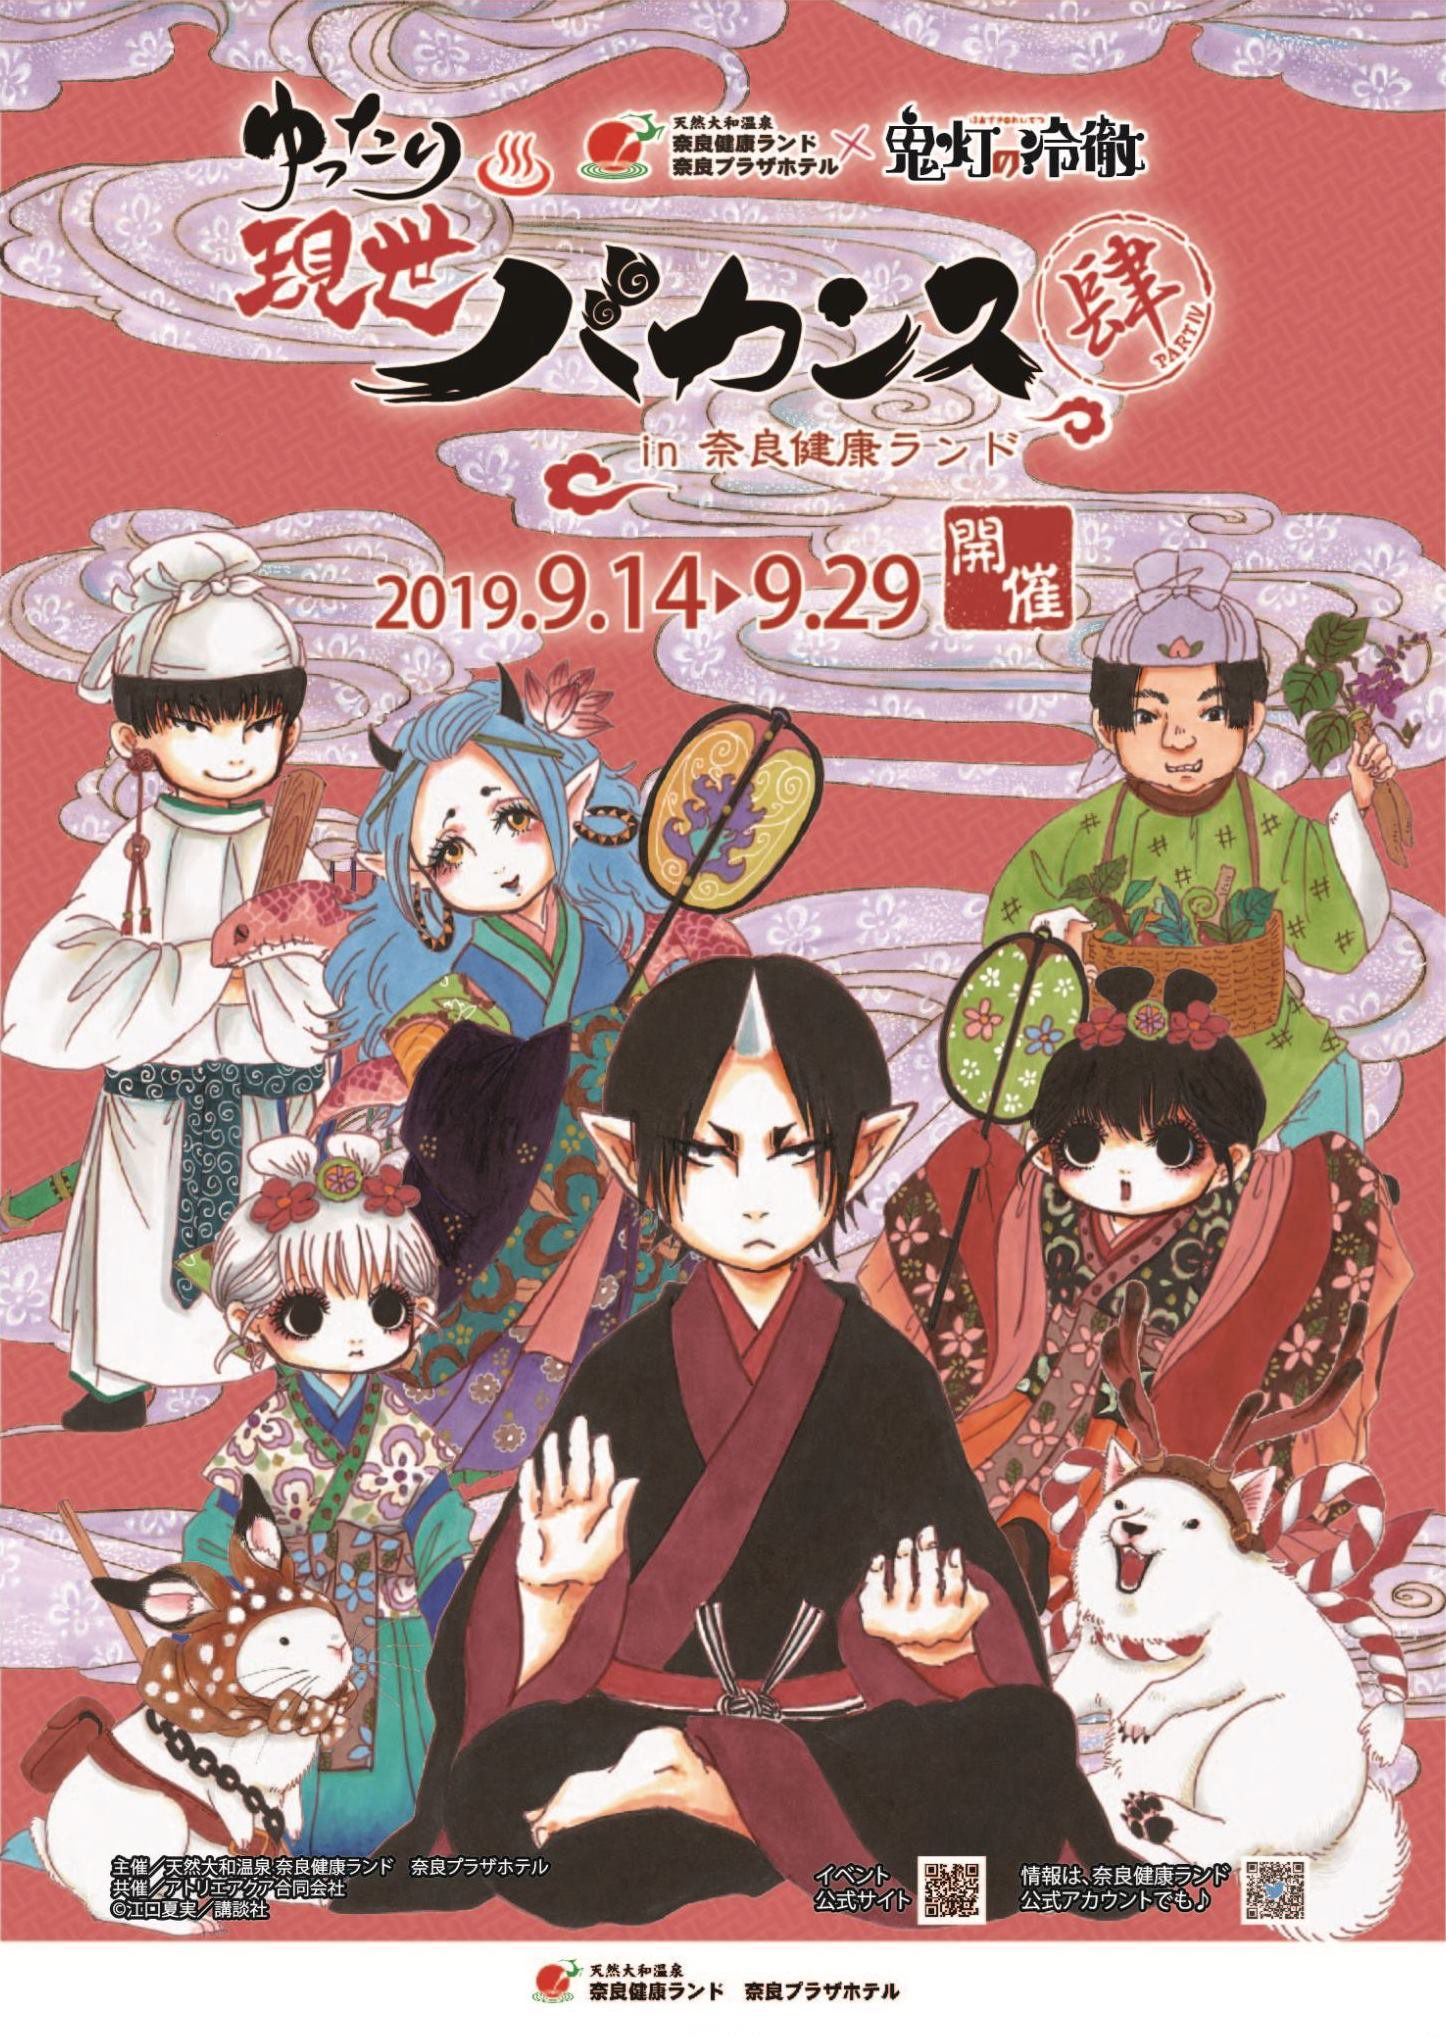 Pin By Bba On 鬼灯の冷徹 In 2020 Comic Book Cover Comic Books Anime